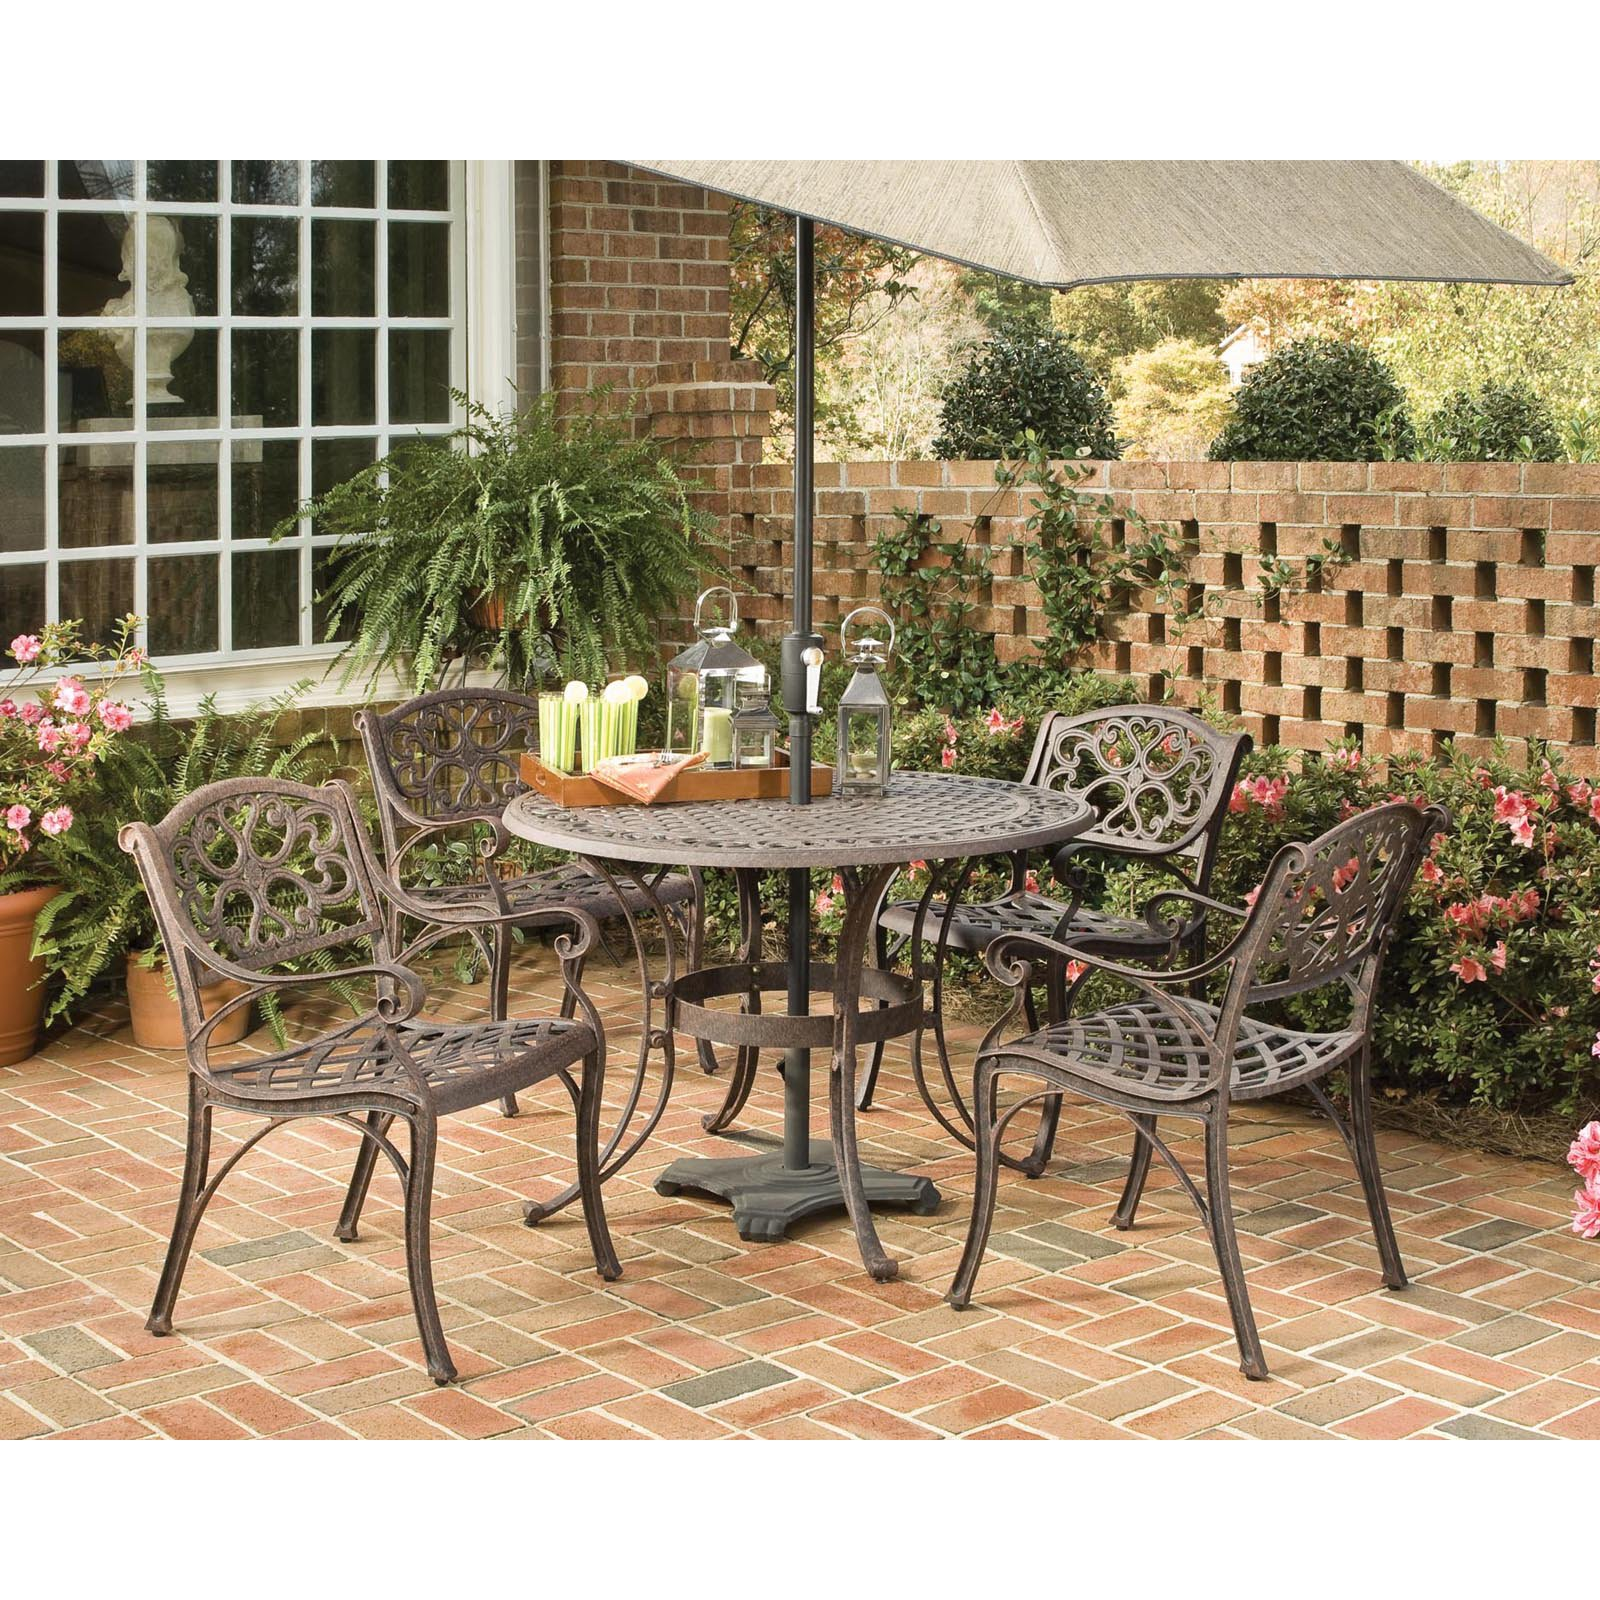 Home Styles Biscayne 5 Piece 42 Round Dining Set Multiple Finishes